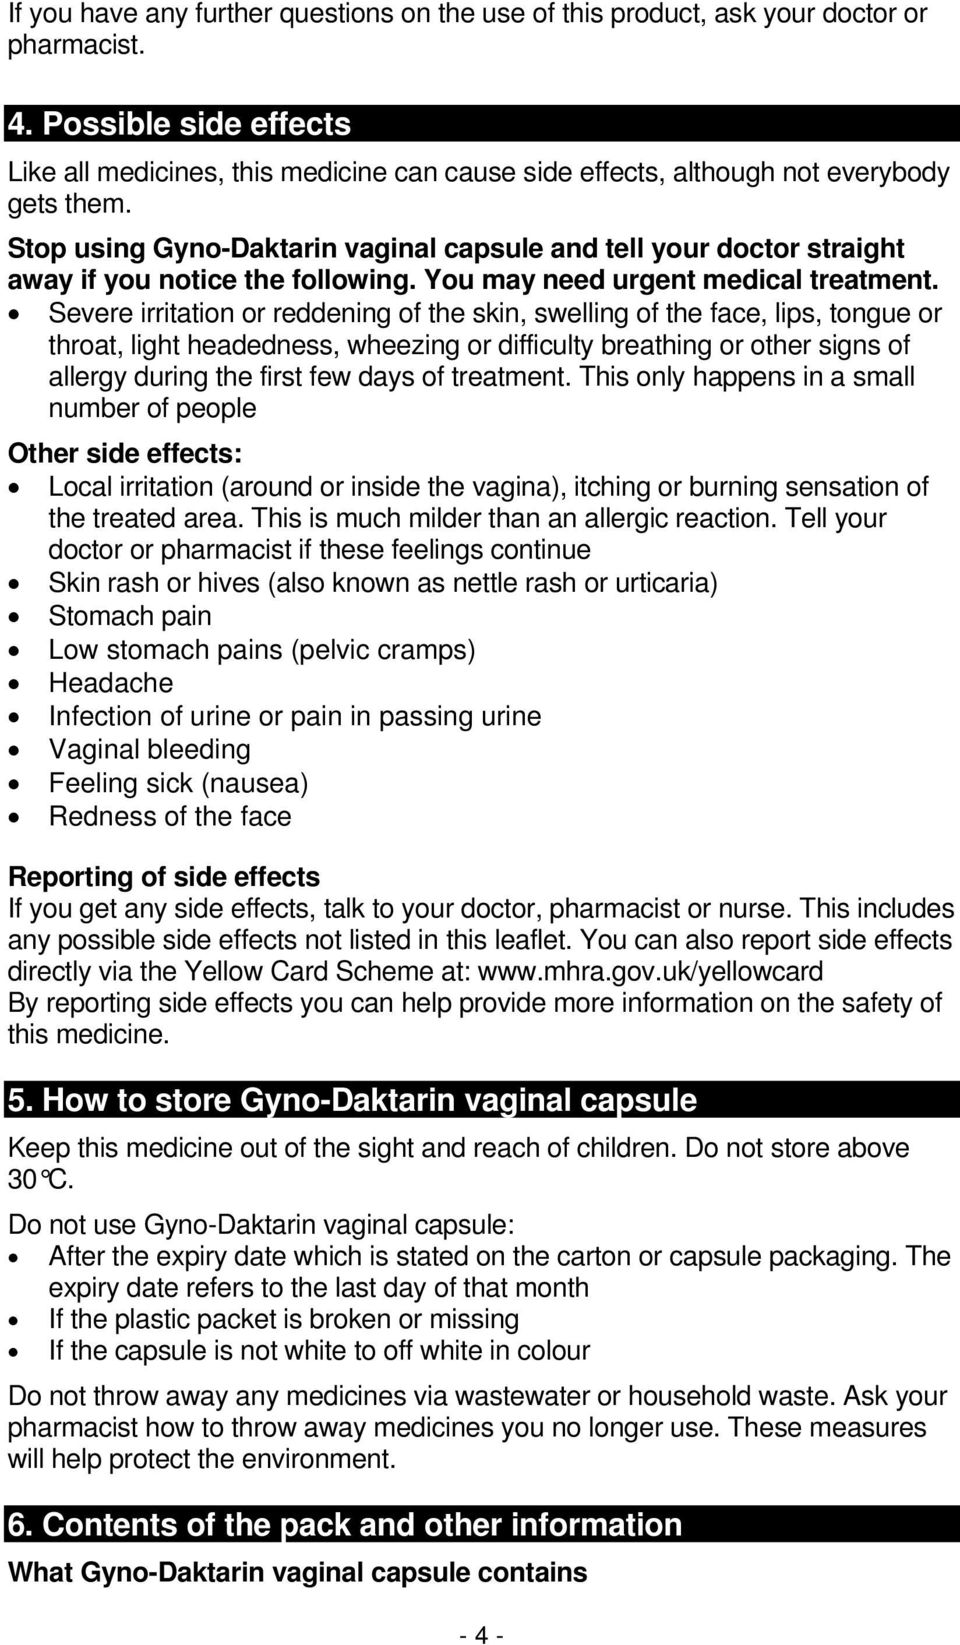 Stop using Gyno-Daktarin vaginal capsule and tell your doctor straight away if you notice the following. You may need urgent medical treatment.